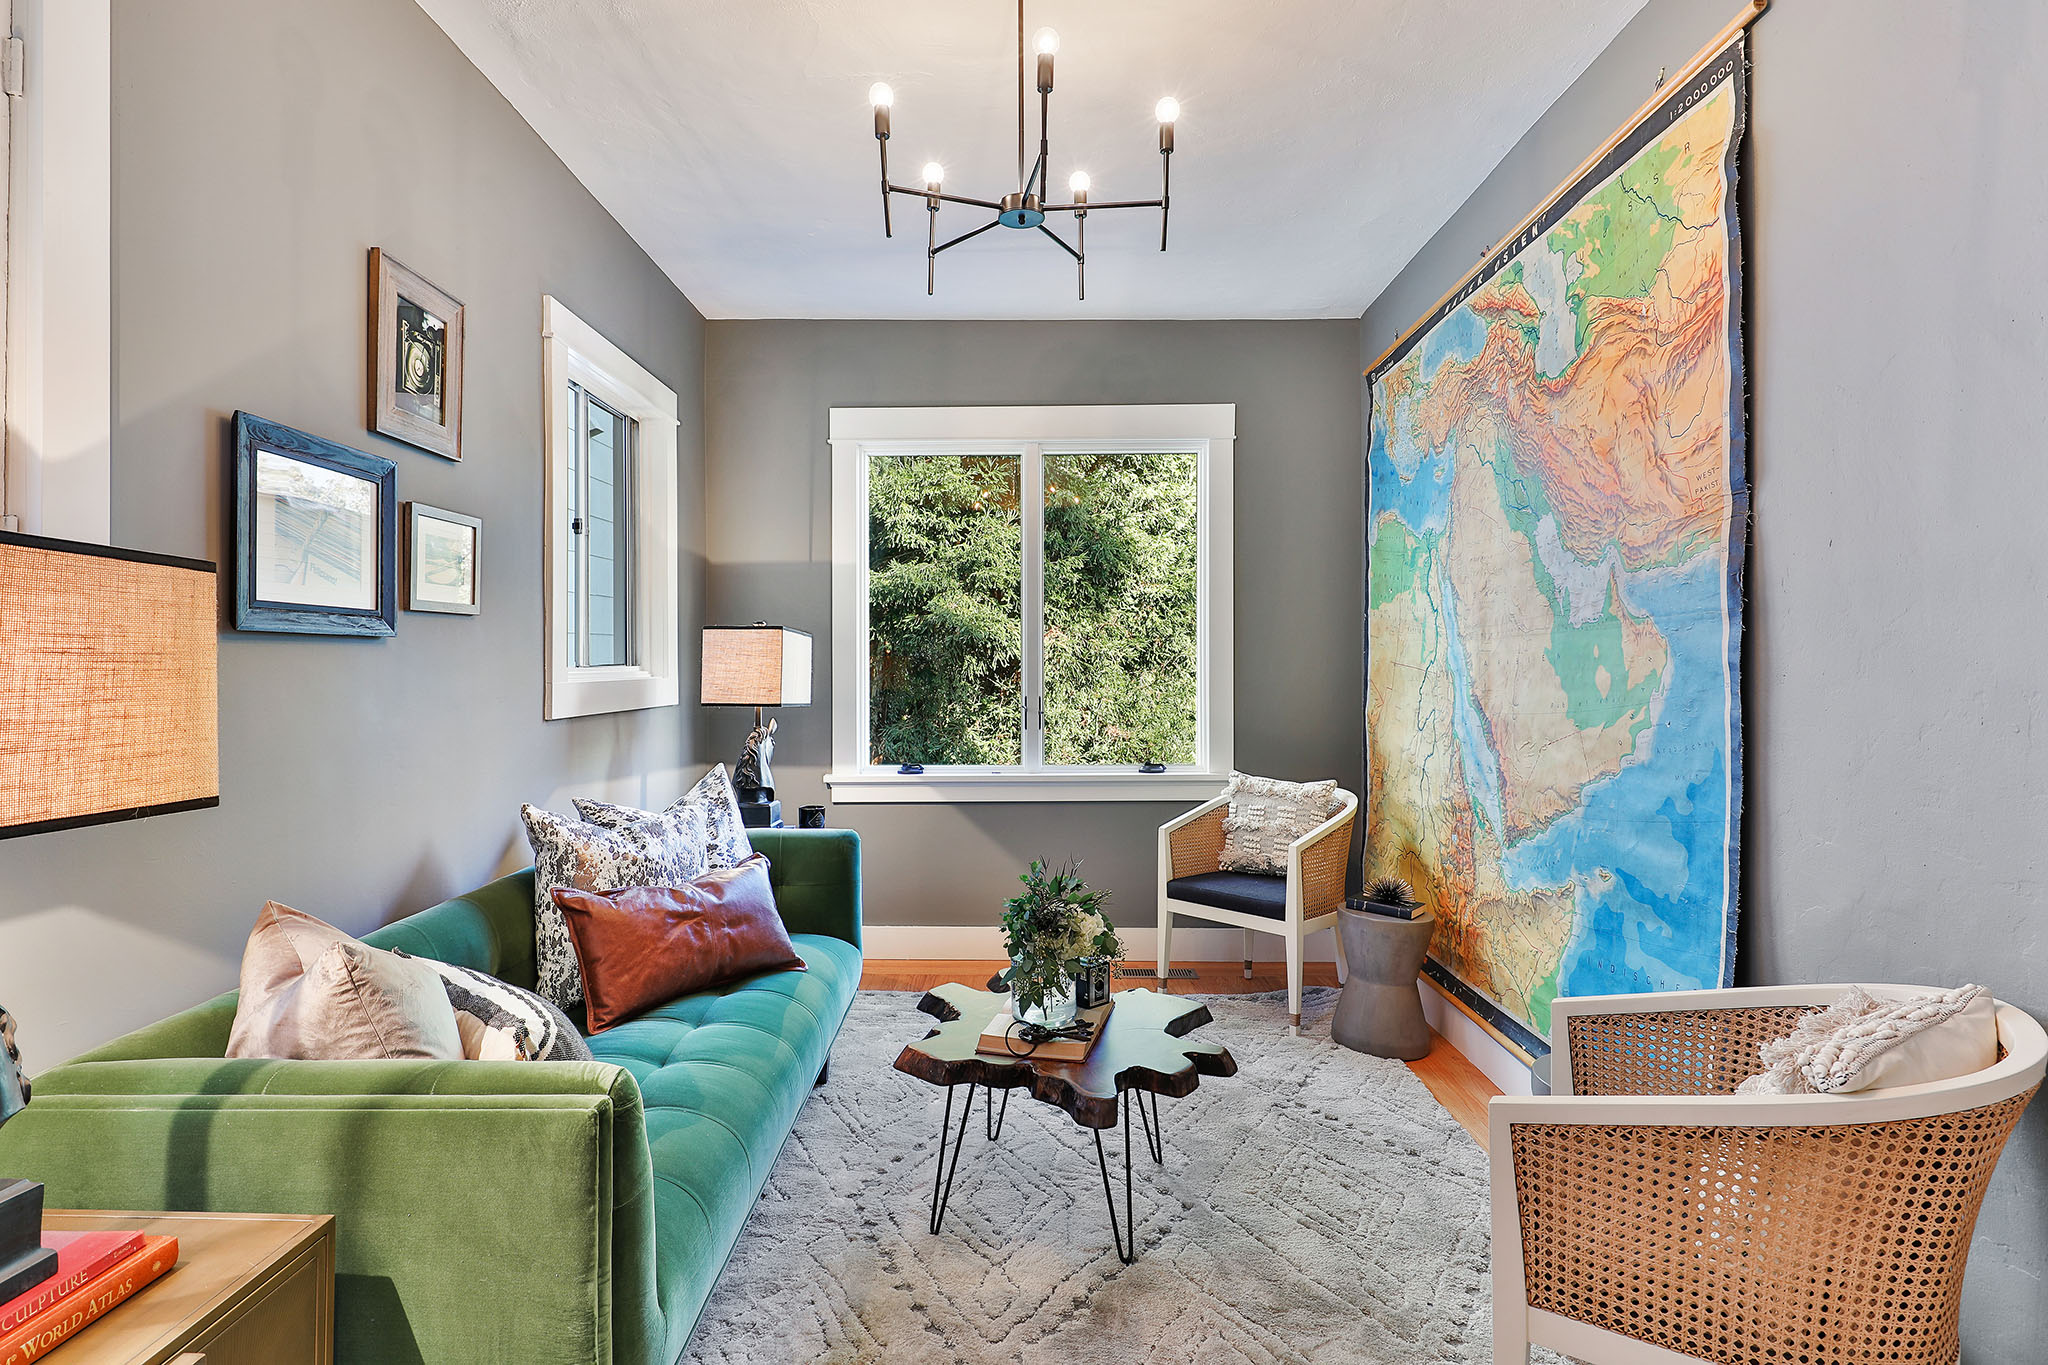 sf luxury home - living room with green velvet couch and wal lmap